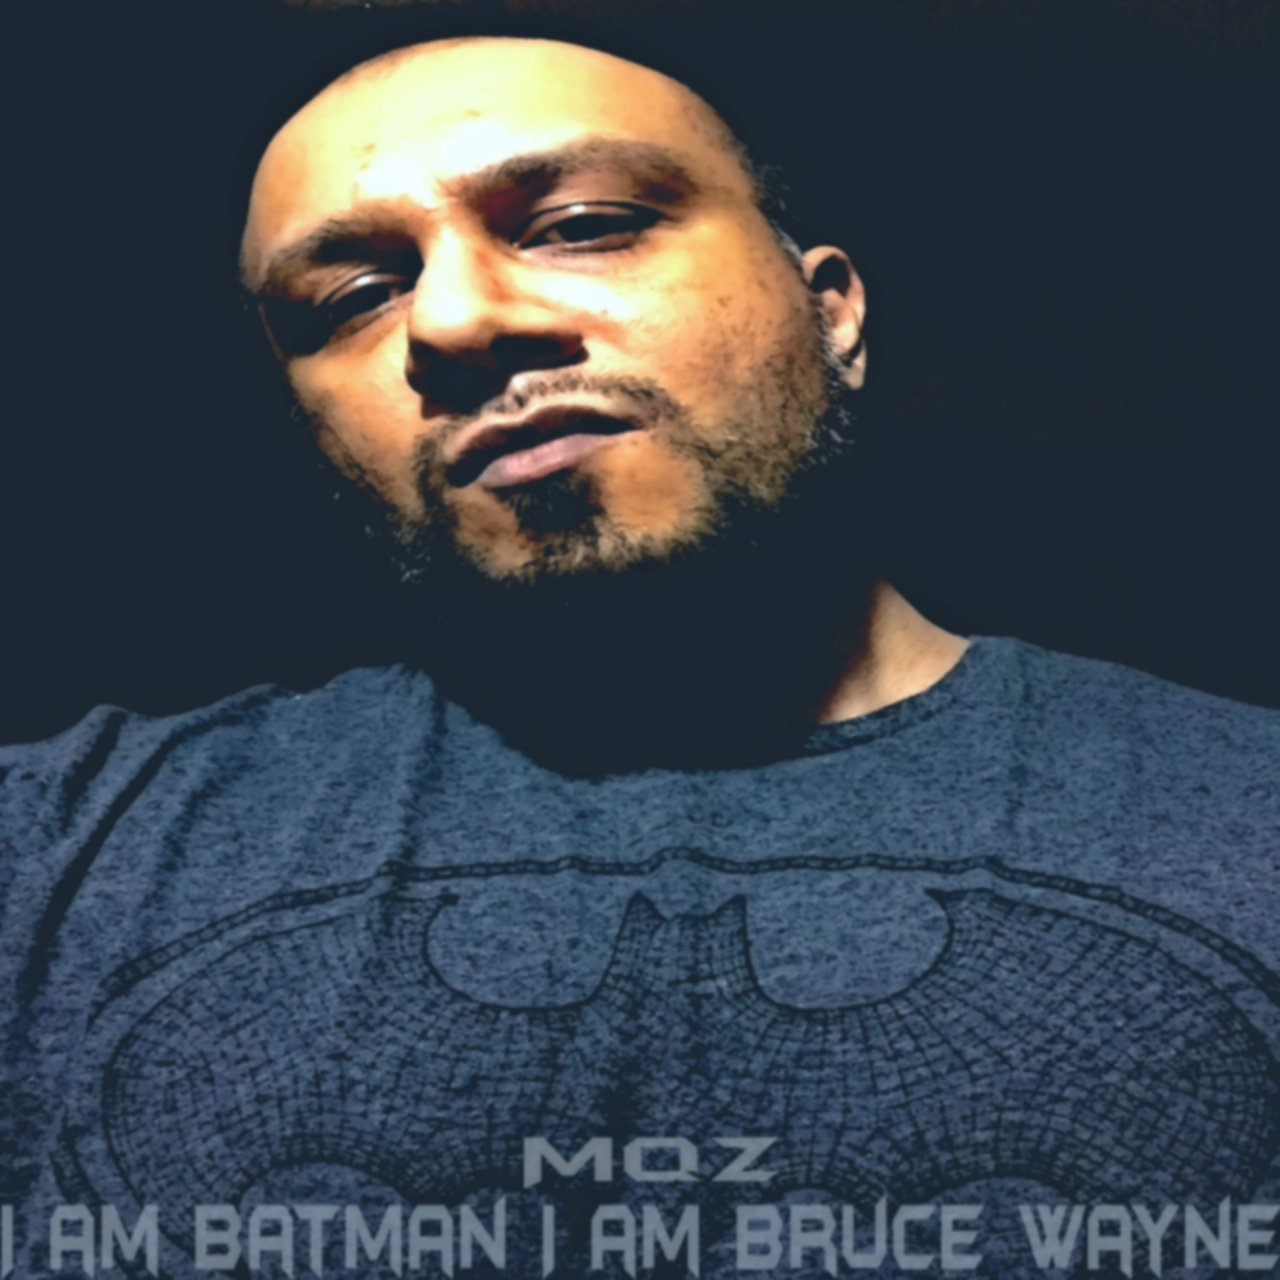 I Am Batman I Am Bruce Wayne